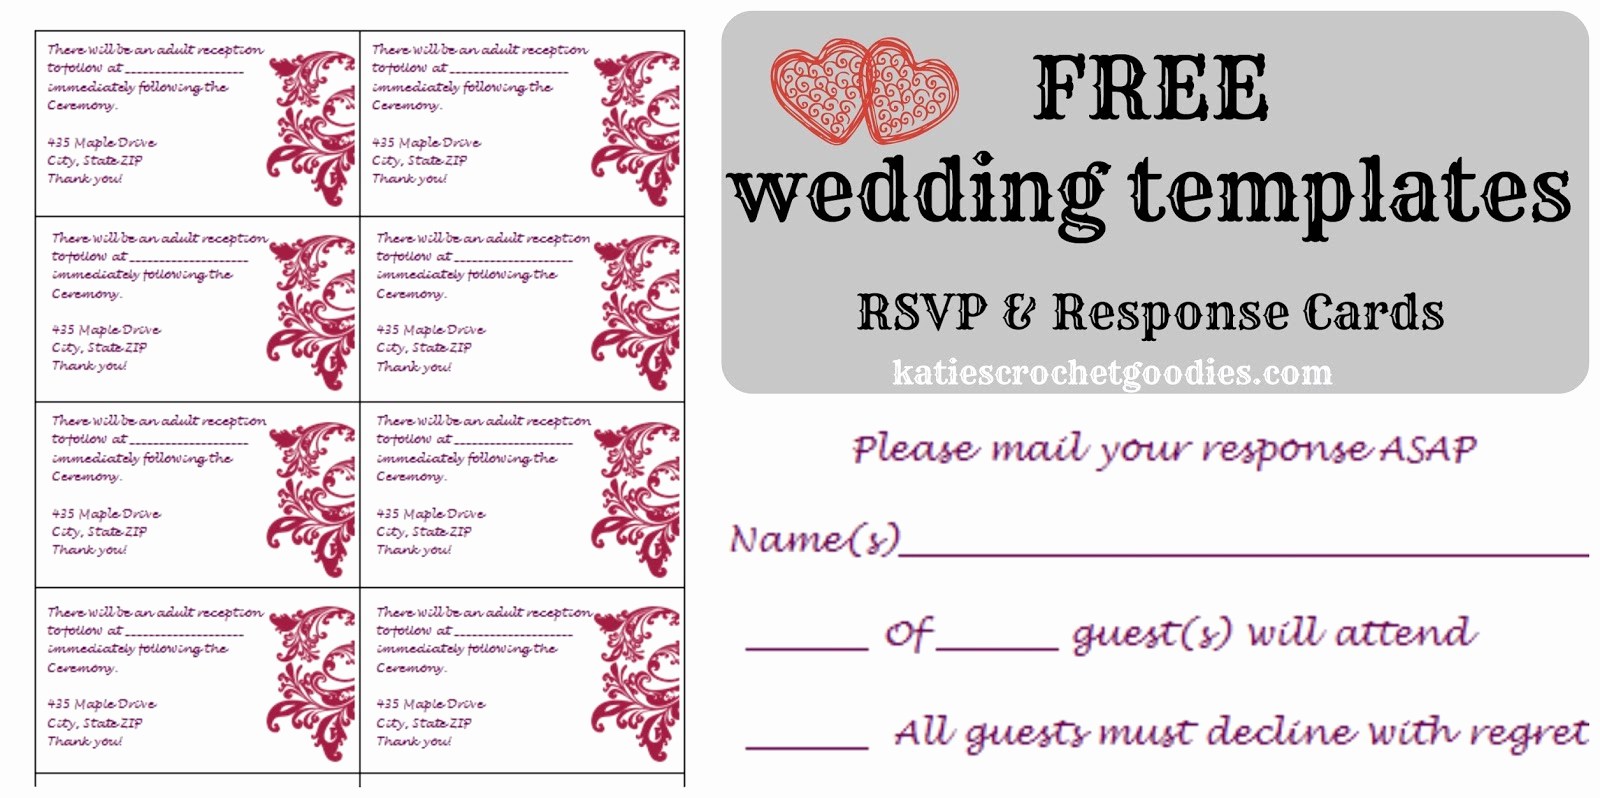 Free Printable Rsvp Cards Beautiful Free Wedding Templates Rsvp & Reception Cards Katie S